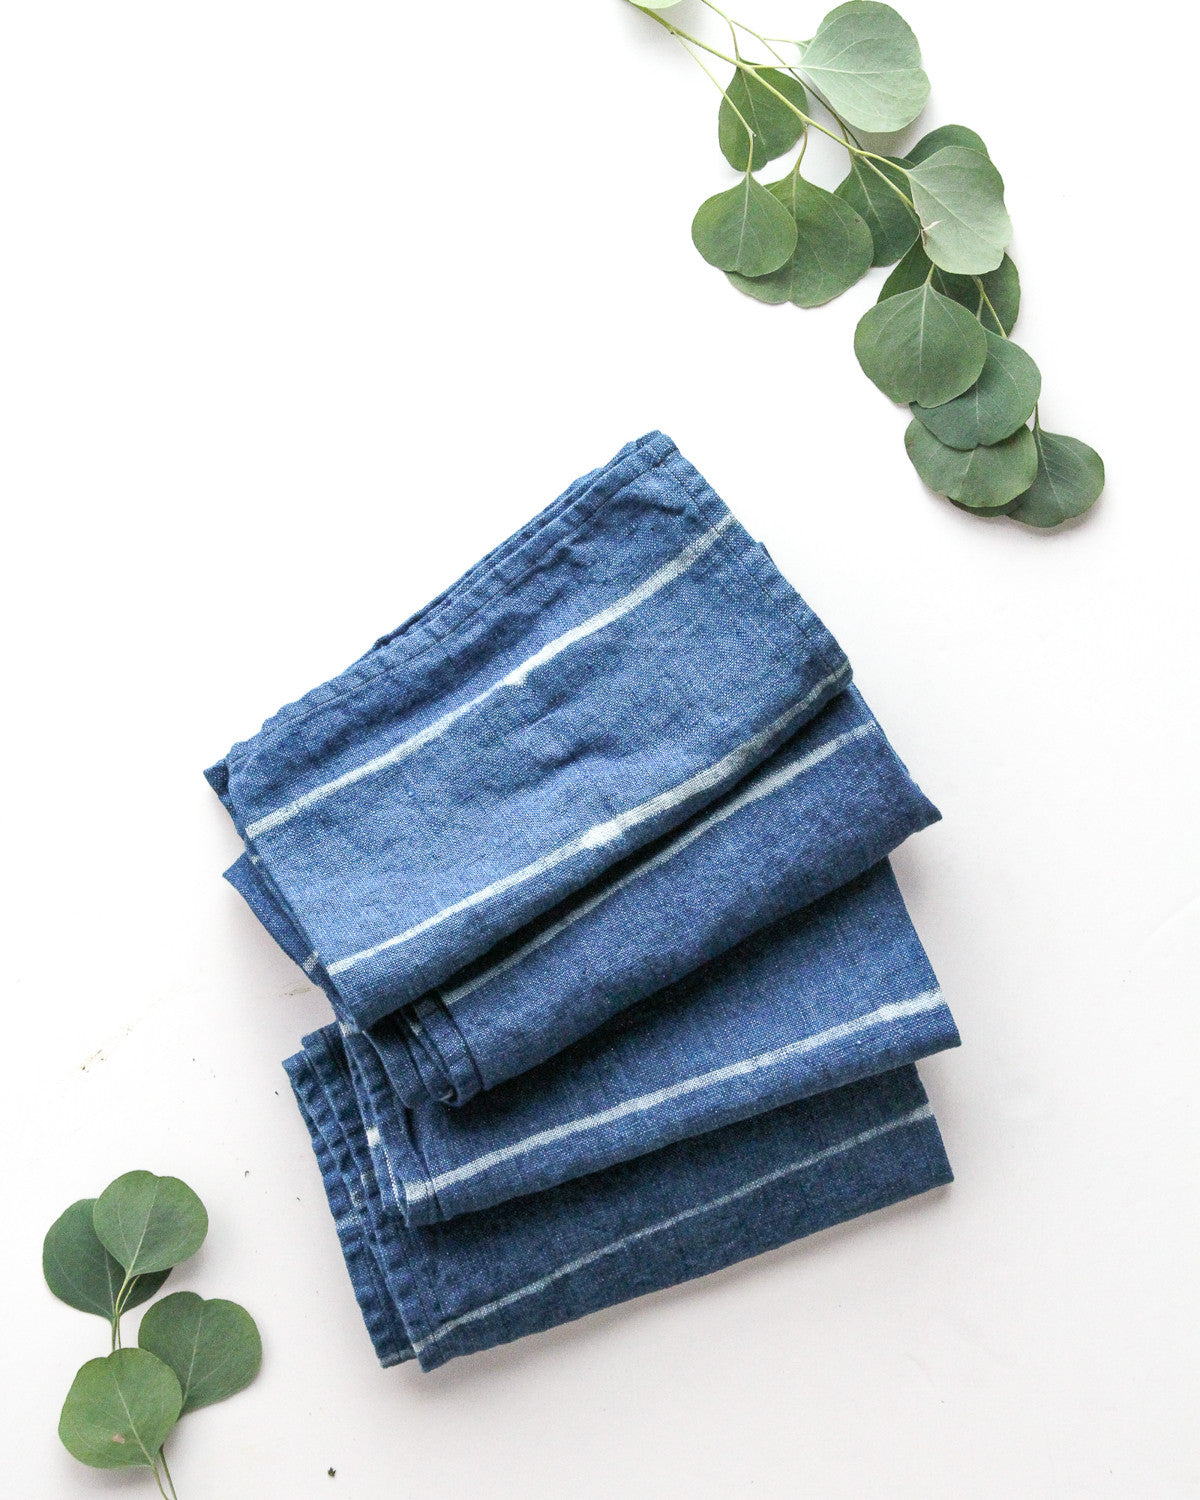 Indigo Linen Napkin - Set of 4